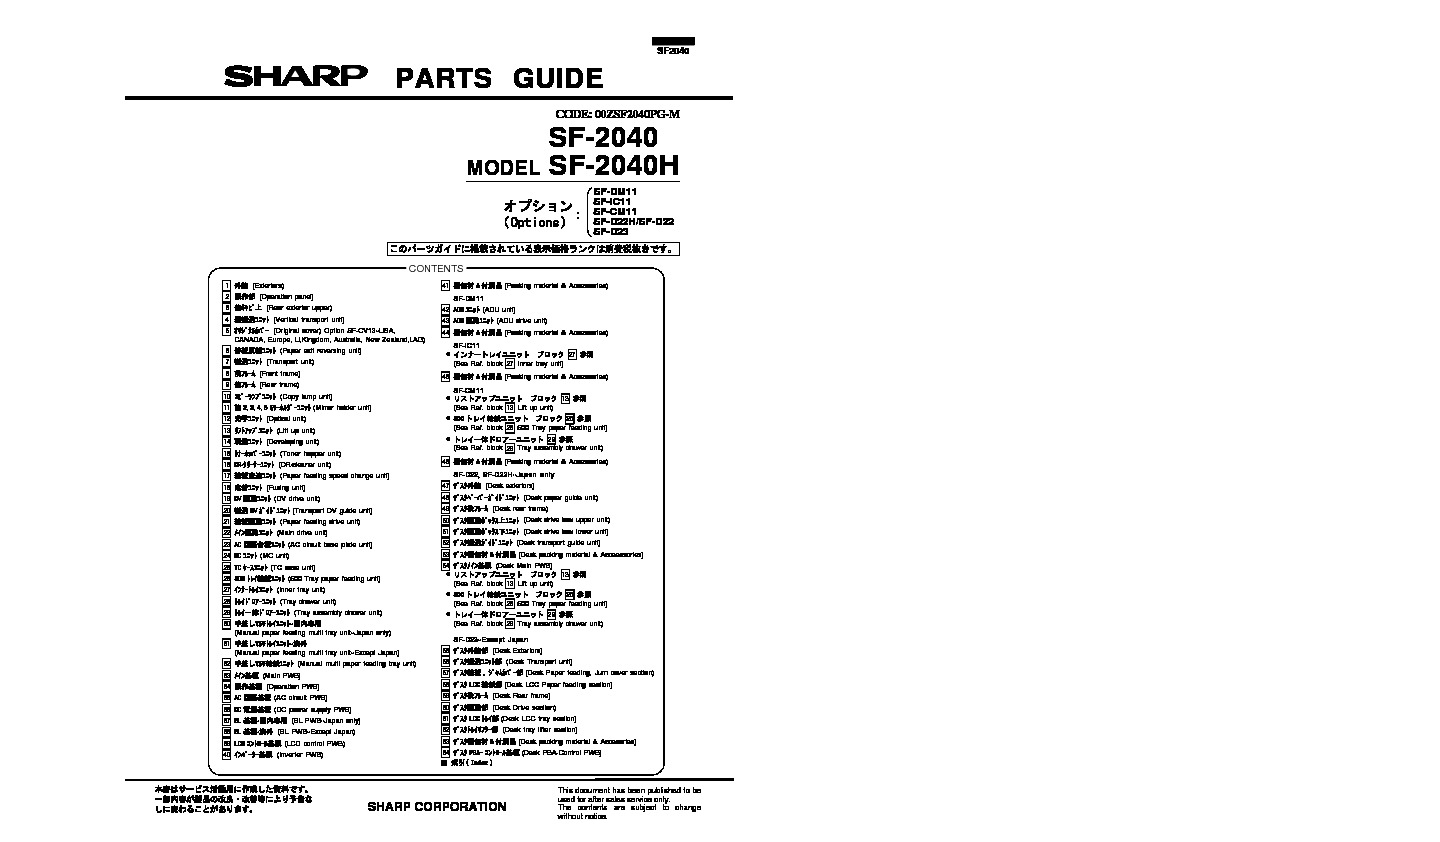 SHARP sharp sf 2040 manual partes SF2040 PARTES pdf